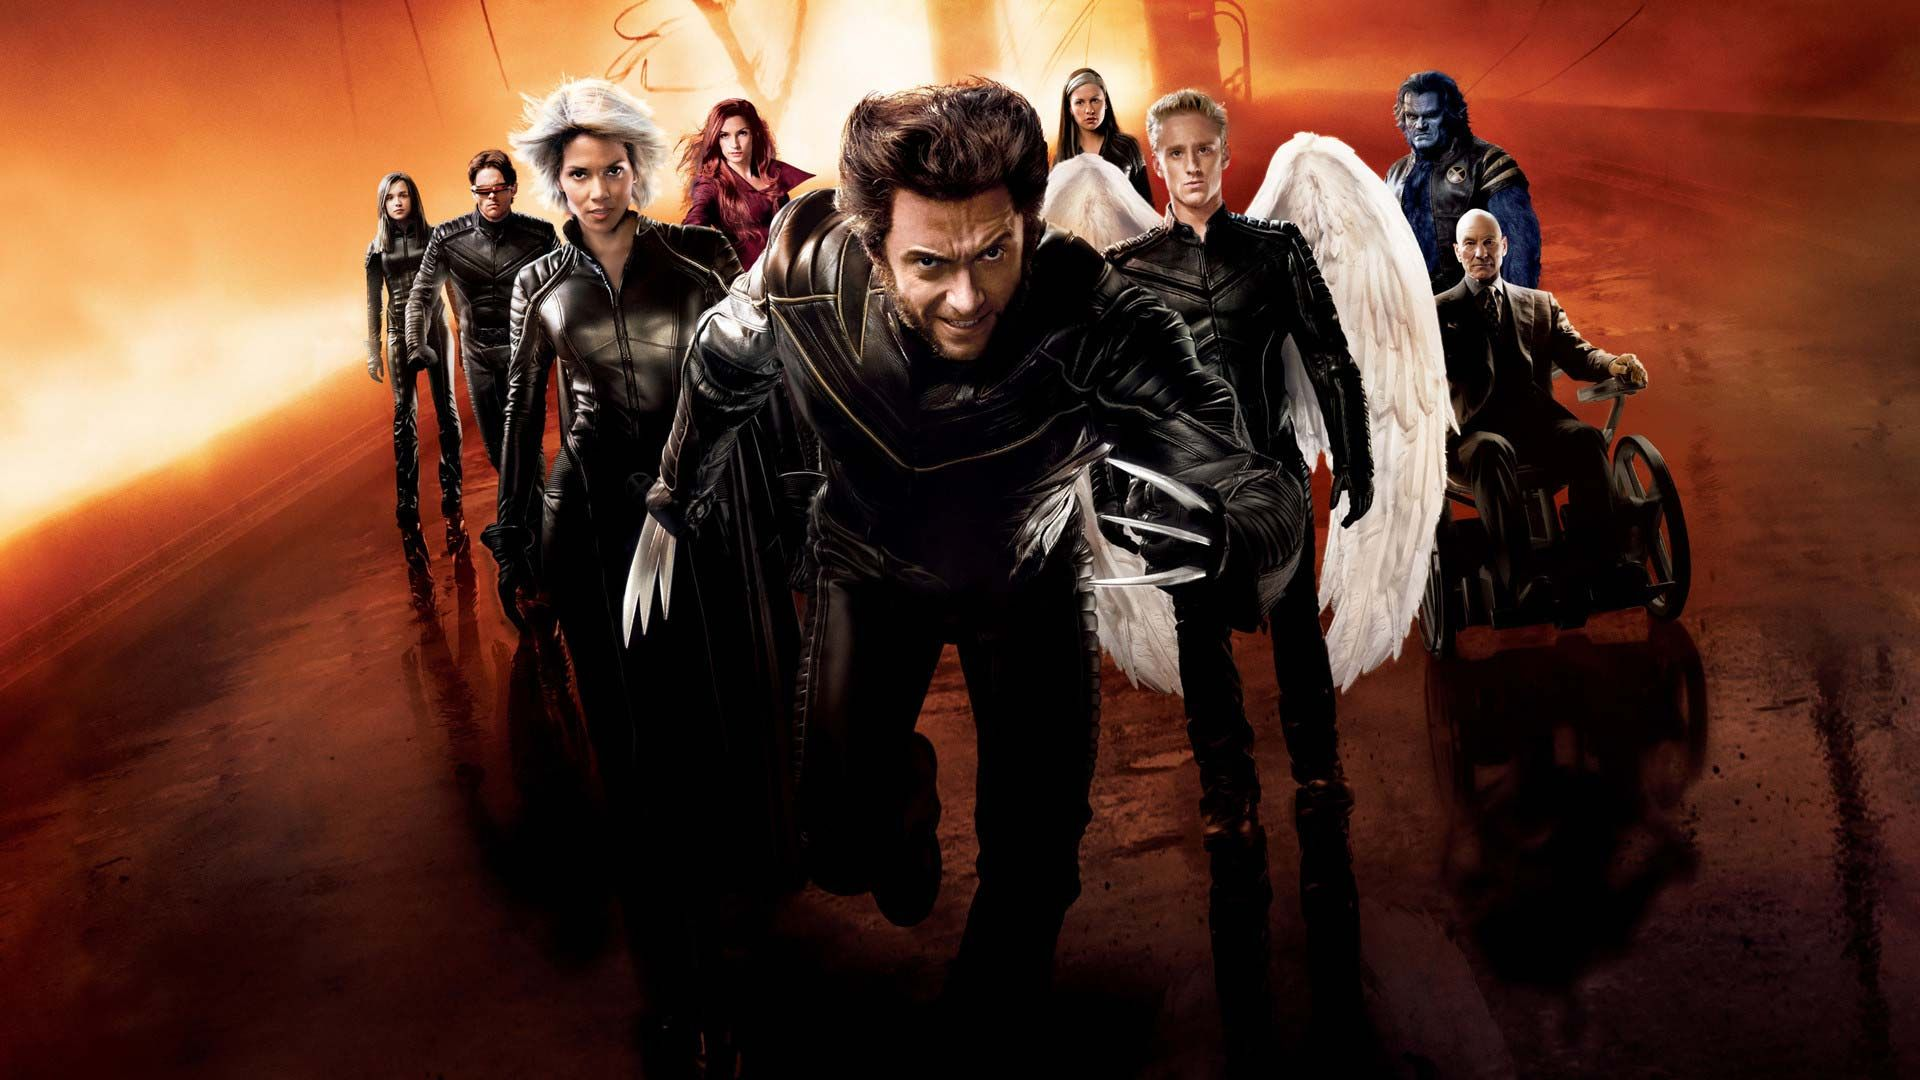 hugh jackman x-men wolverine wallpapers hd collection - the